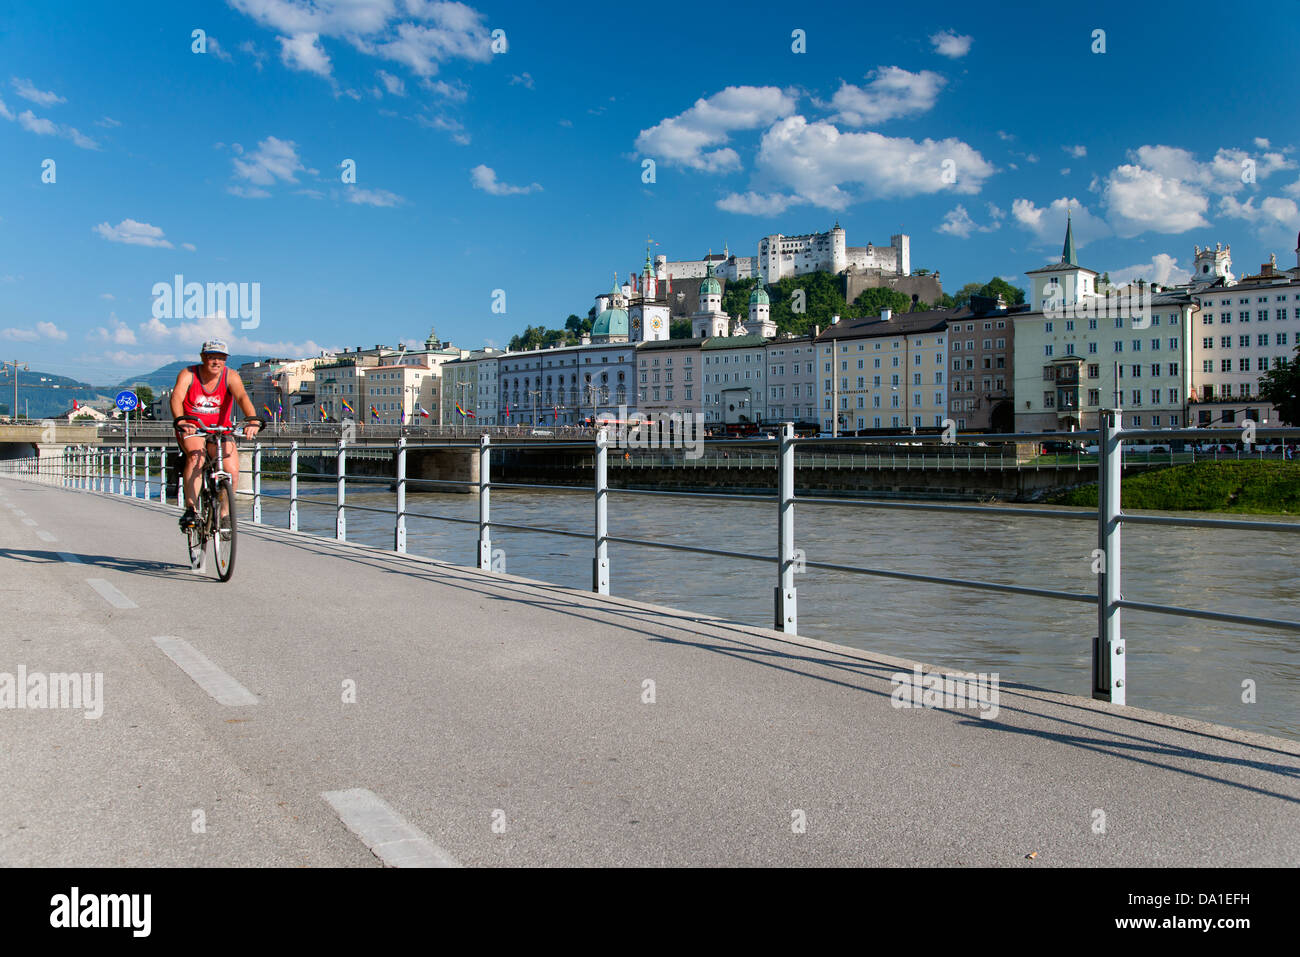 Cyclist riding in  the bike lane along Salzach River, Salzburg, Austria - Stock Image